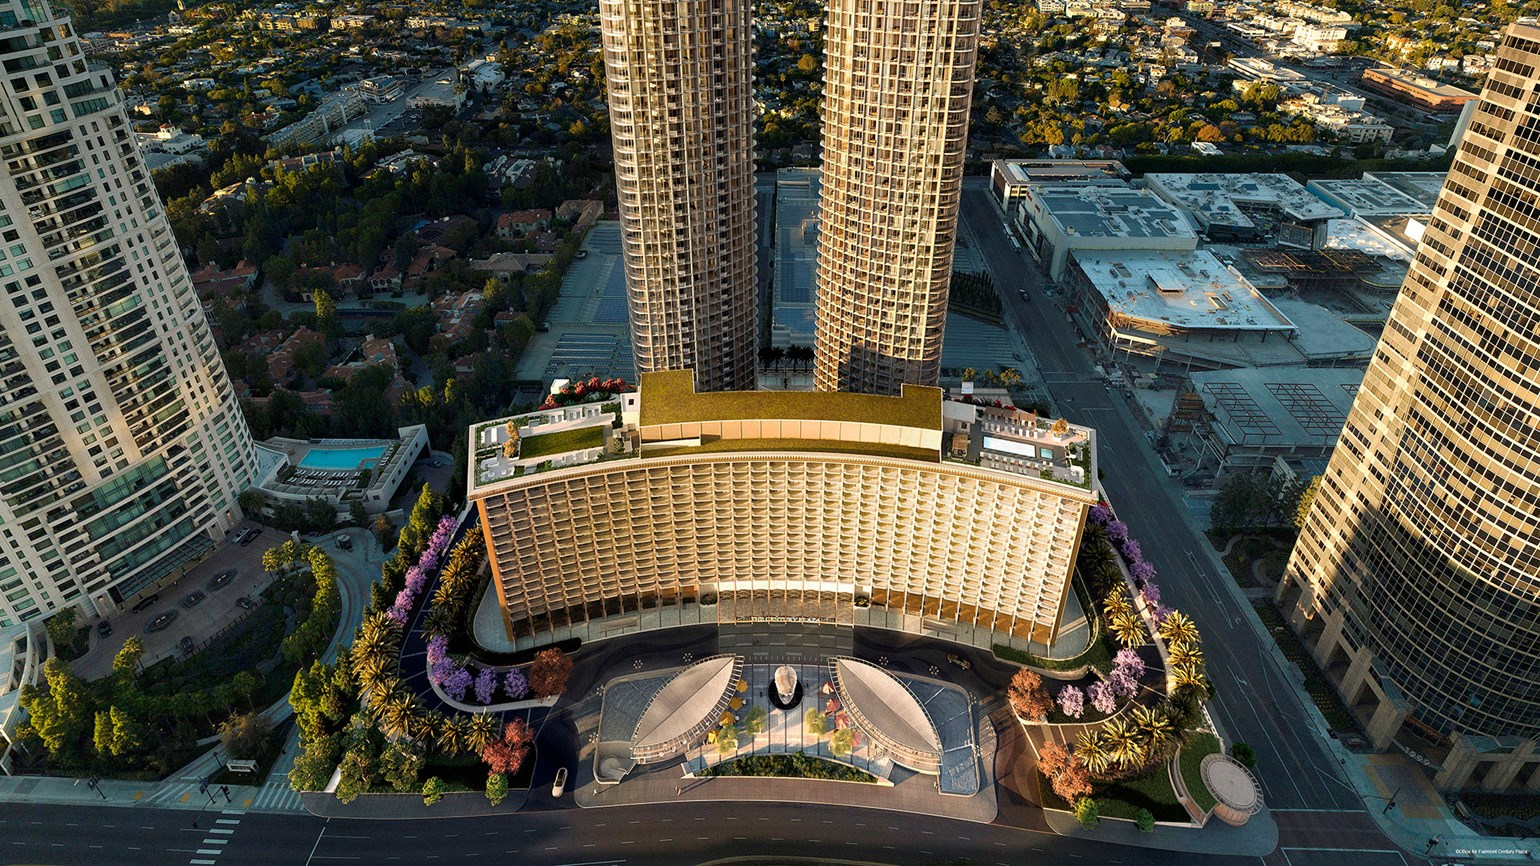 Fairmont Century Plaza to open Sept. 1